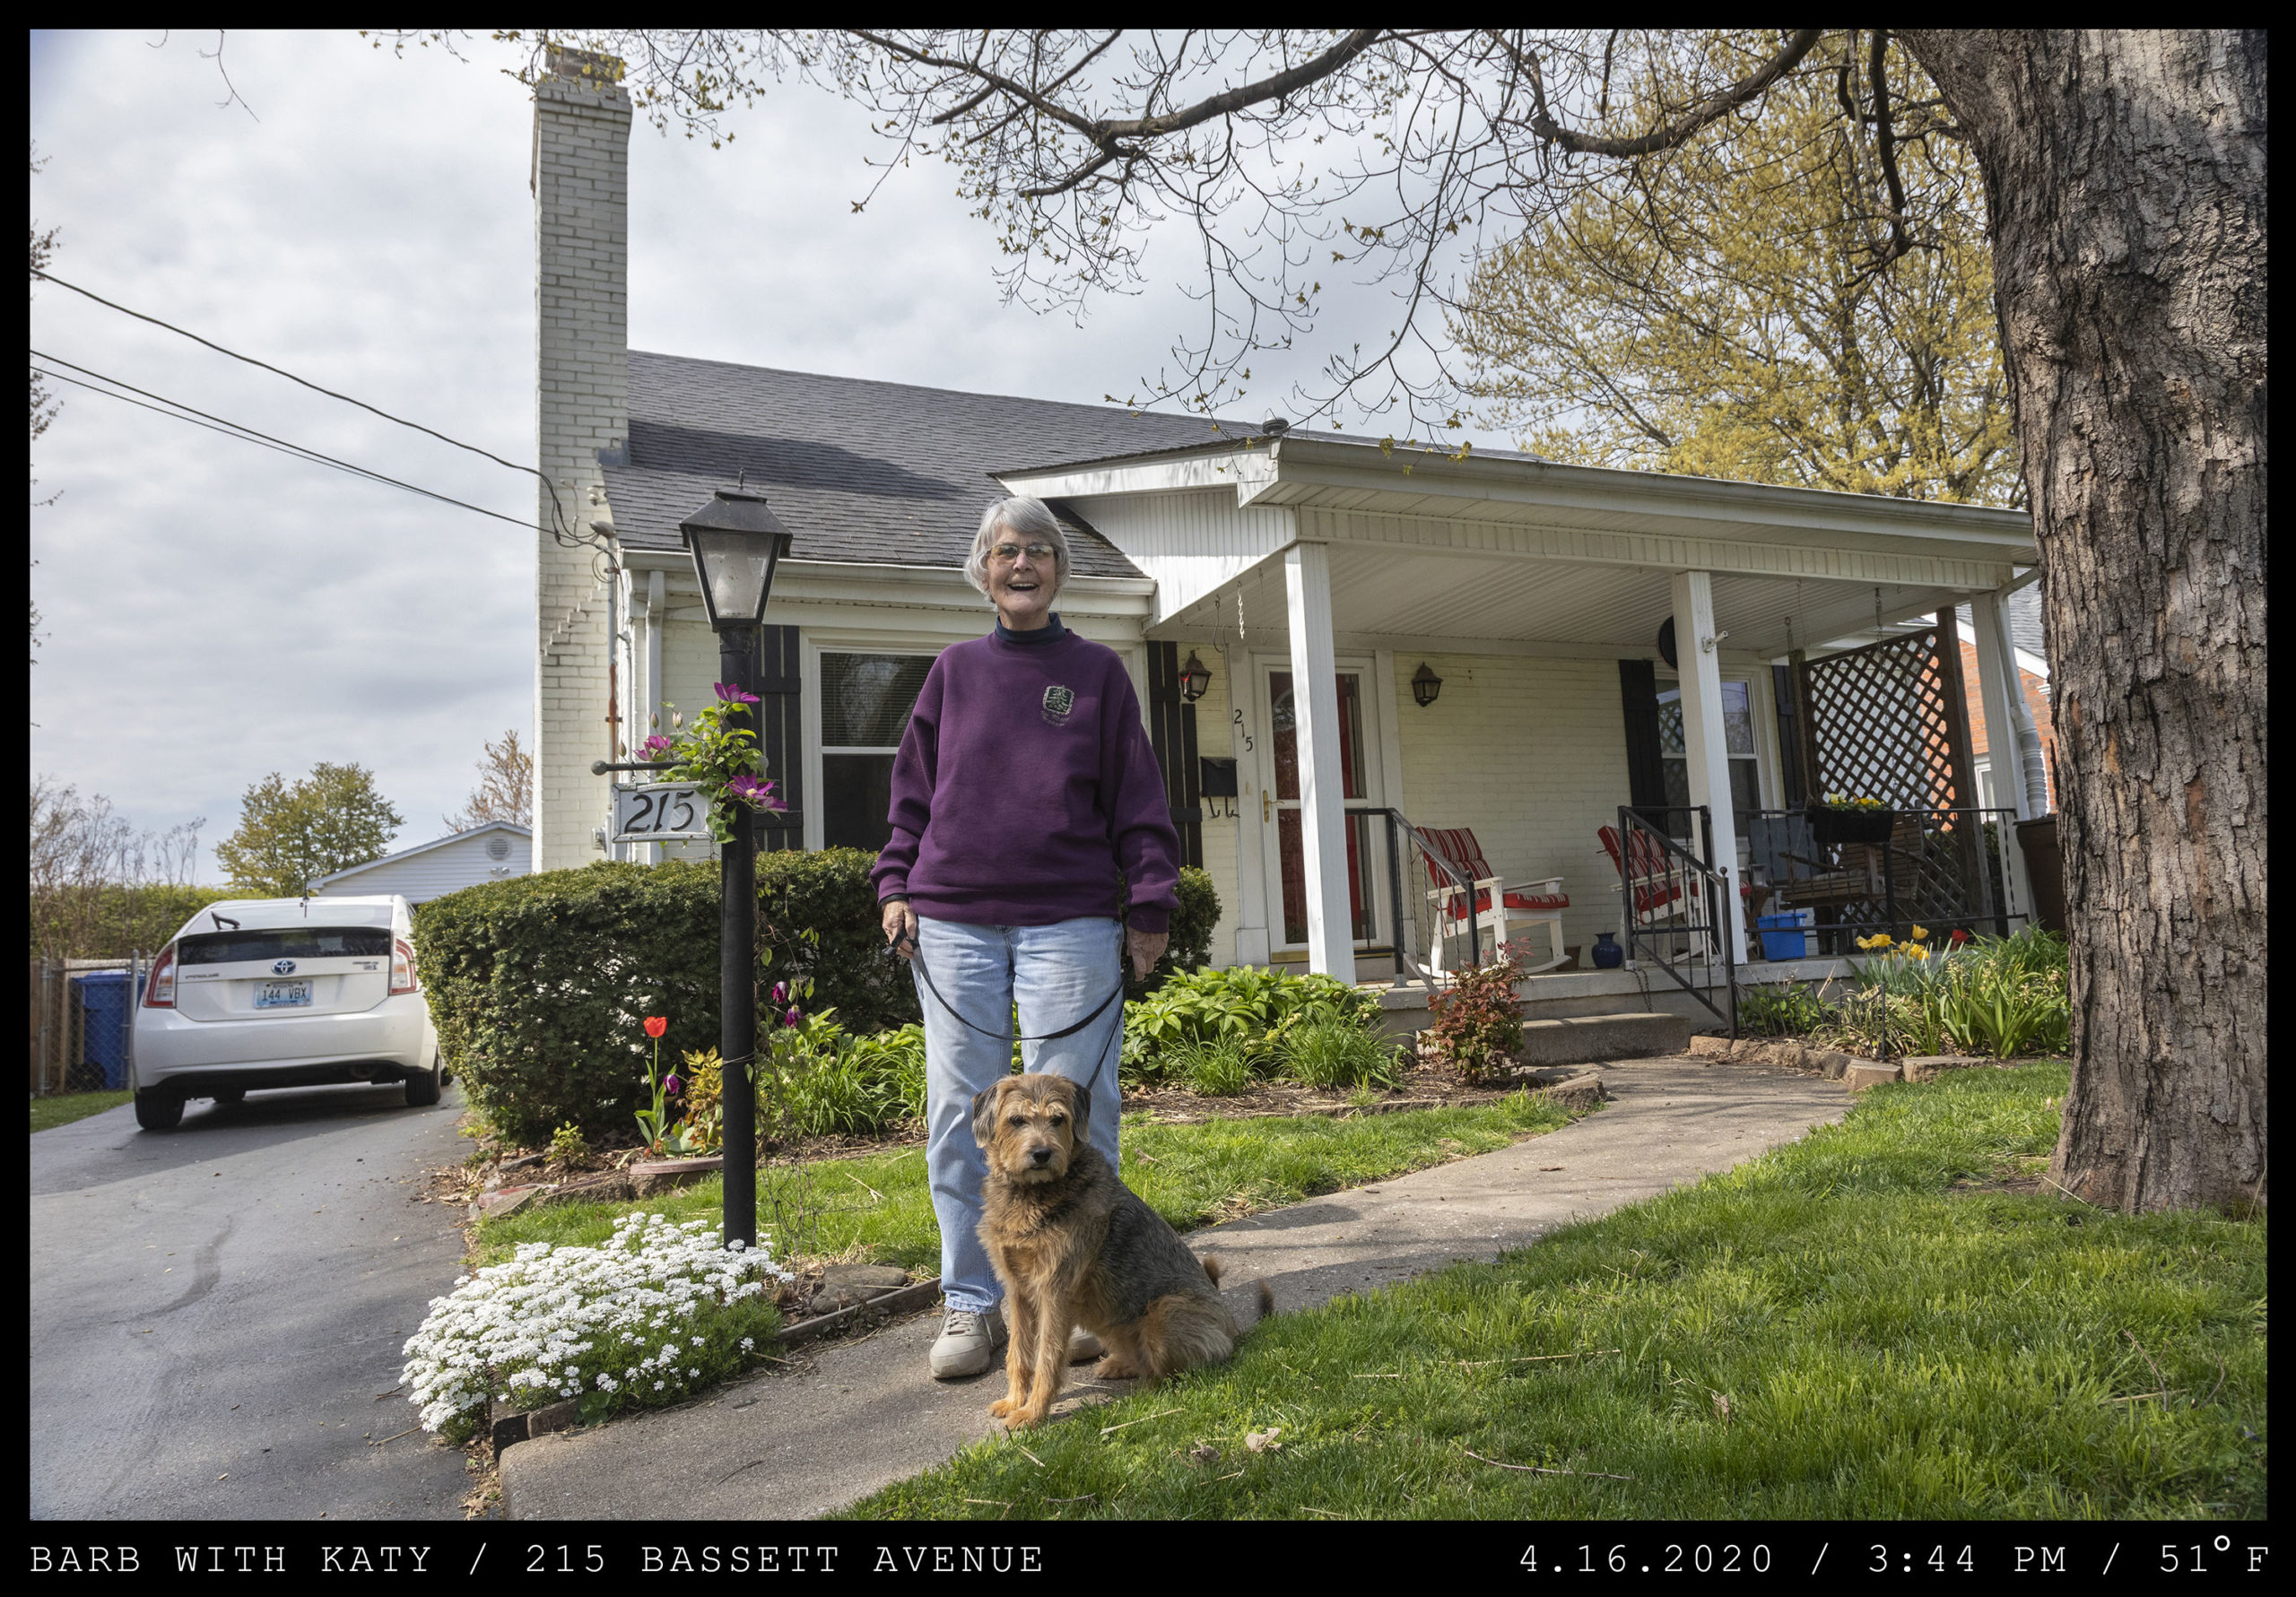 An smiling elderly woman holds an old dog on a leash next to the driveway of a white home with a front porch.